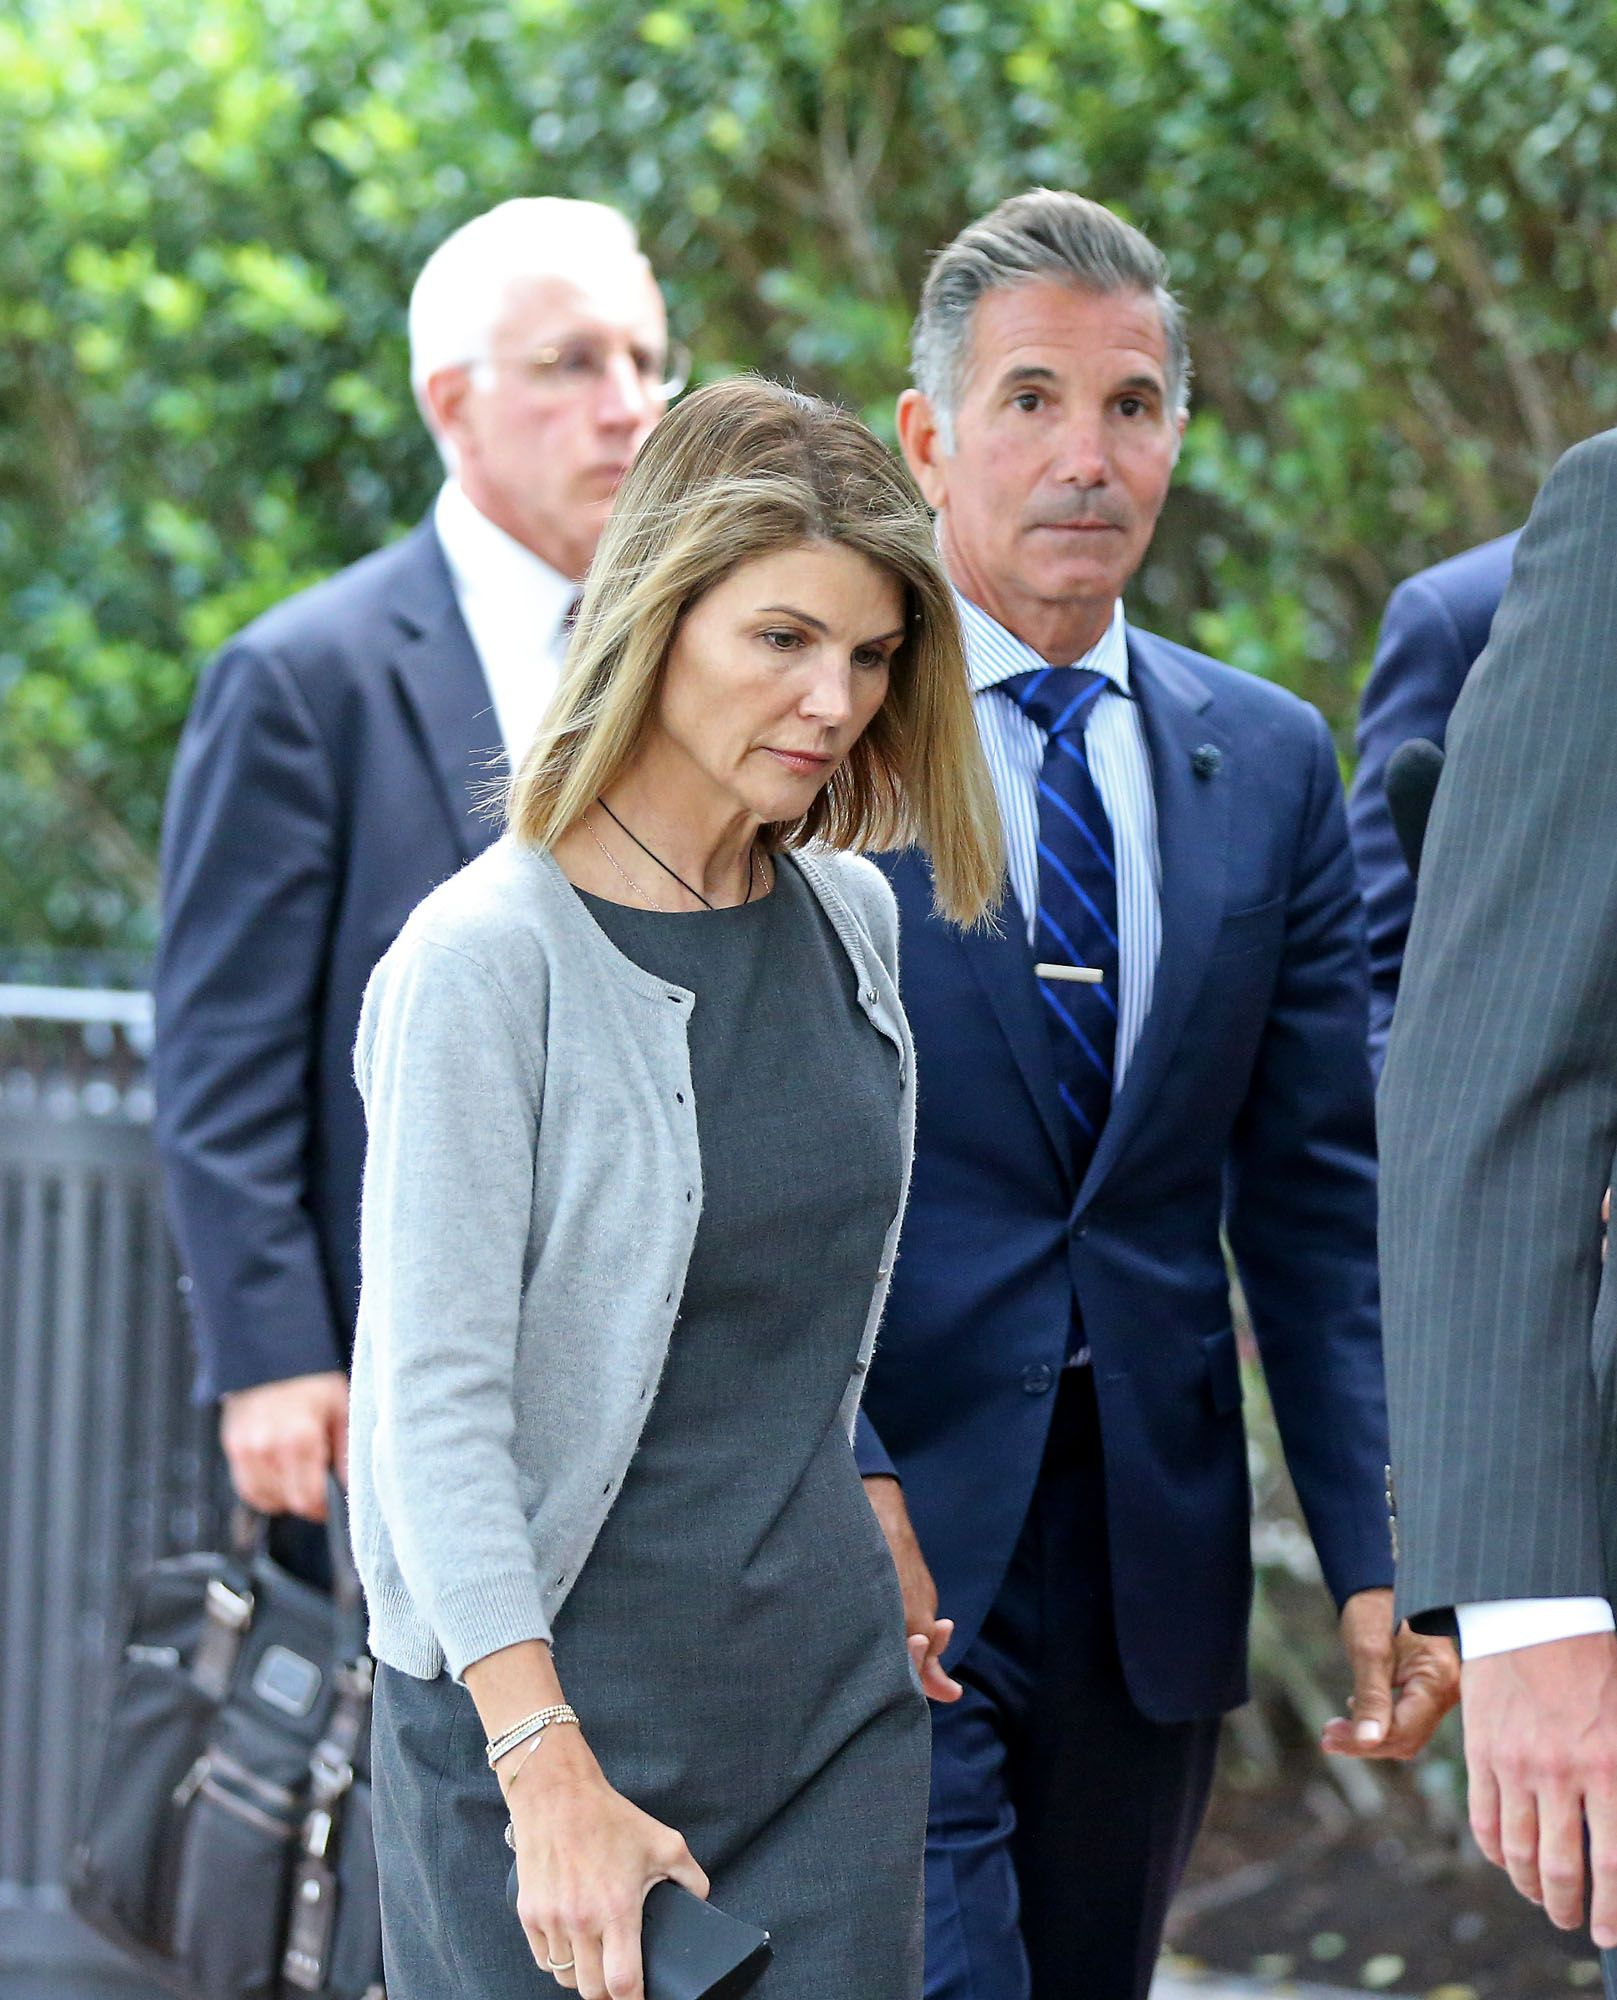 Lori Loughlin and husband Mossimo Giannulli outside Moakley Federal Courthouse after a hearing in August 2019 in Boston, MA.   Source: Getty Images